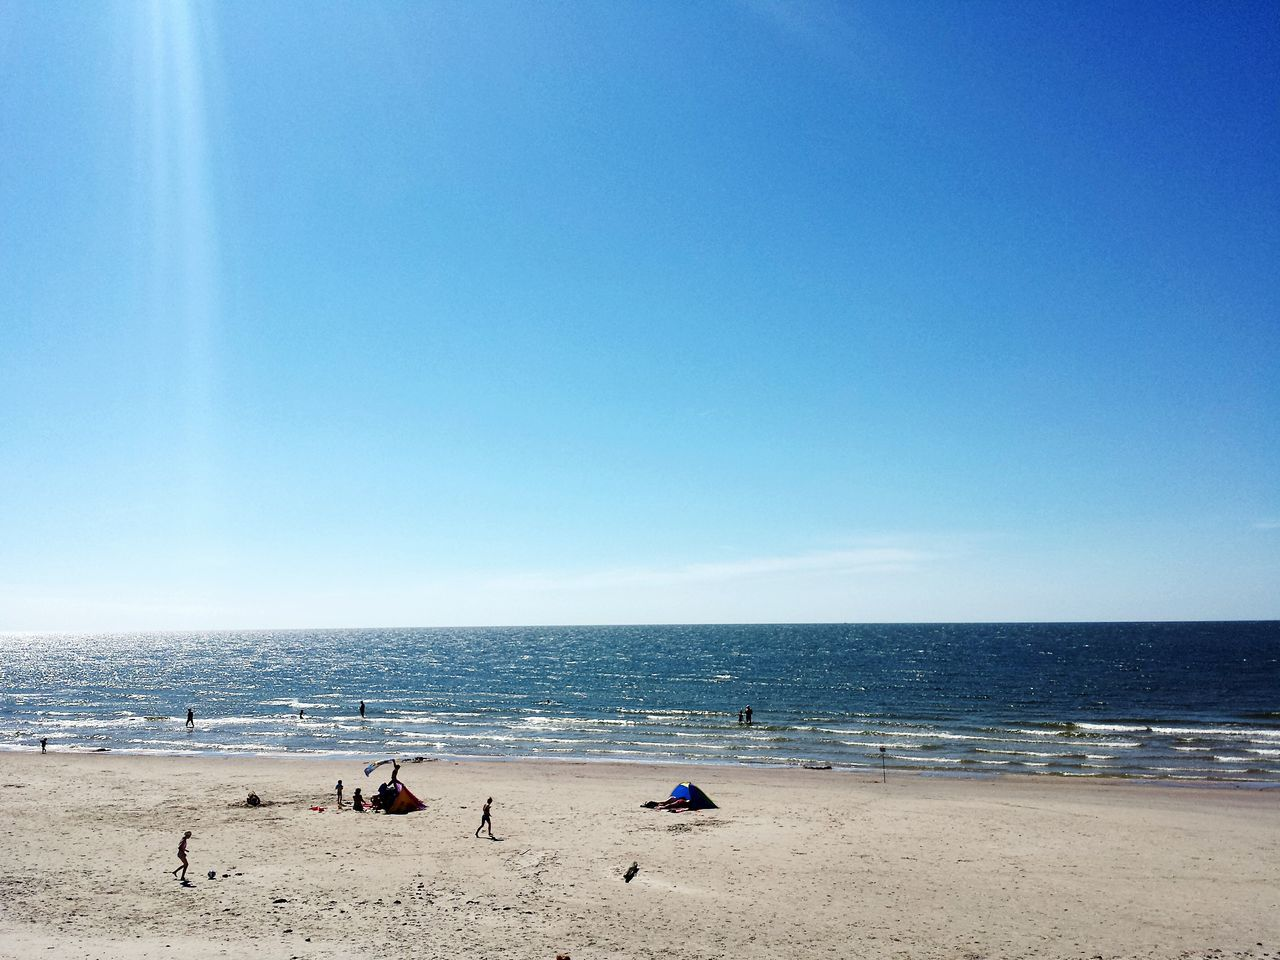 beach, sea, horizon over water, sand, copy space, blue, nature, clear sky, water, beauty in nature, real people, day, scenics, vacations, tranquil scene, tranquility, sunlight, outdoors, leisure activity, sky, summer, large group of people, lifestyles, men, people